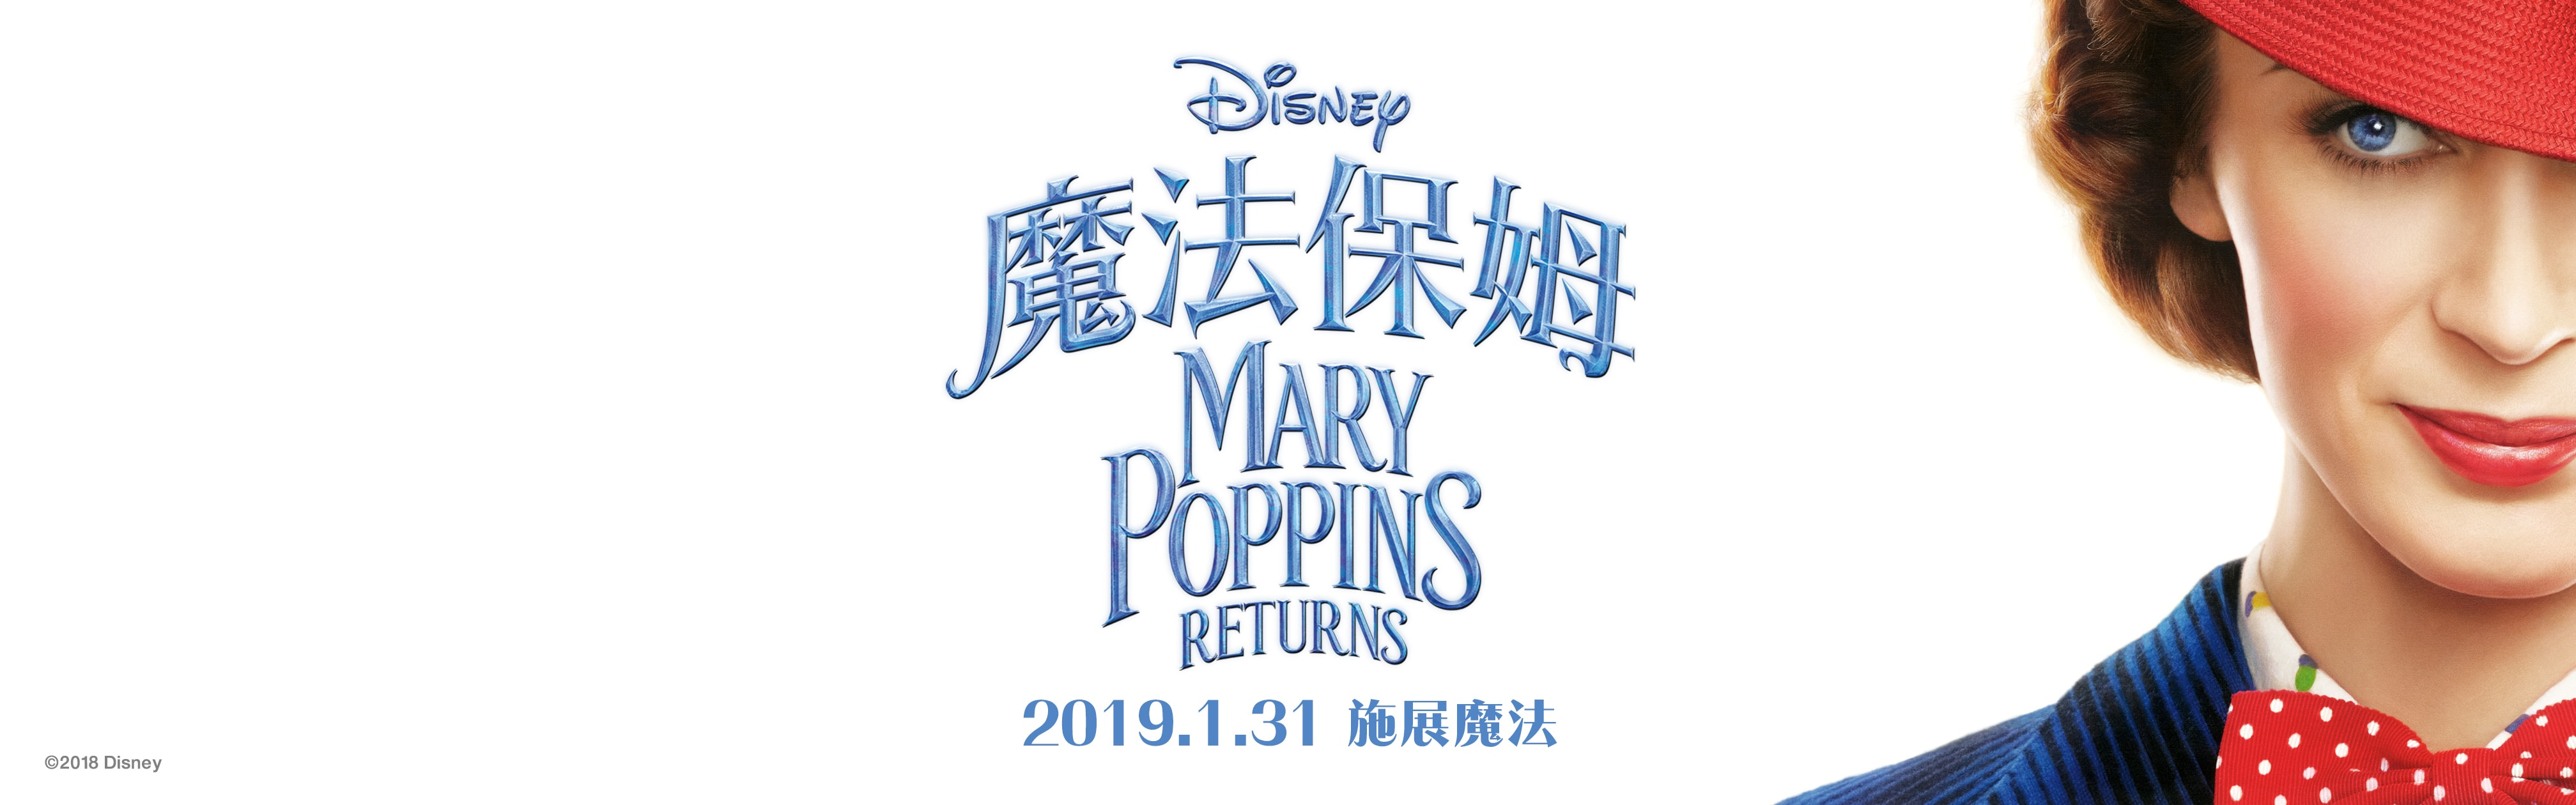 Mary Poppins - Disney.com banner